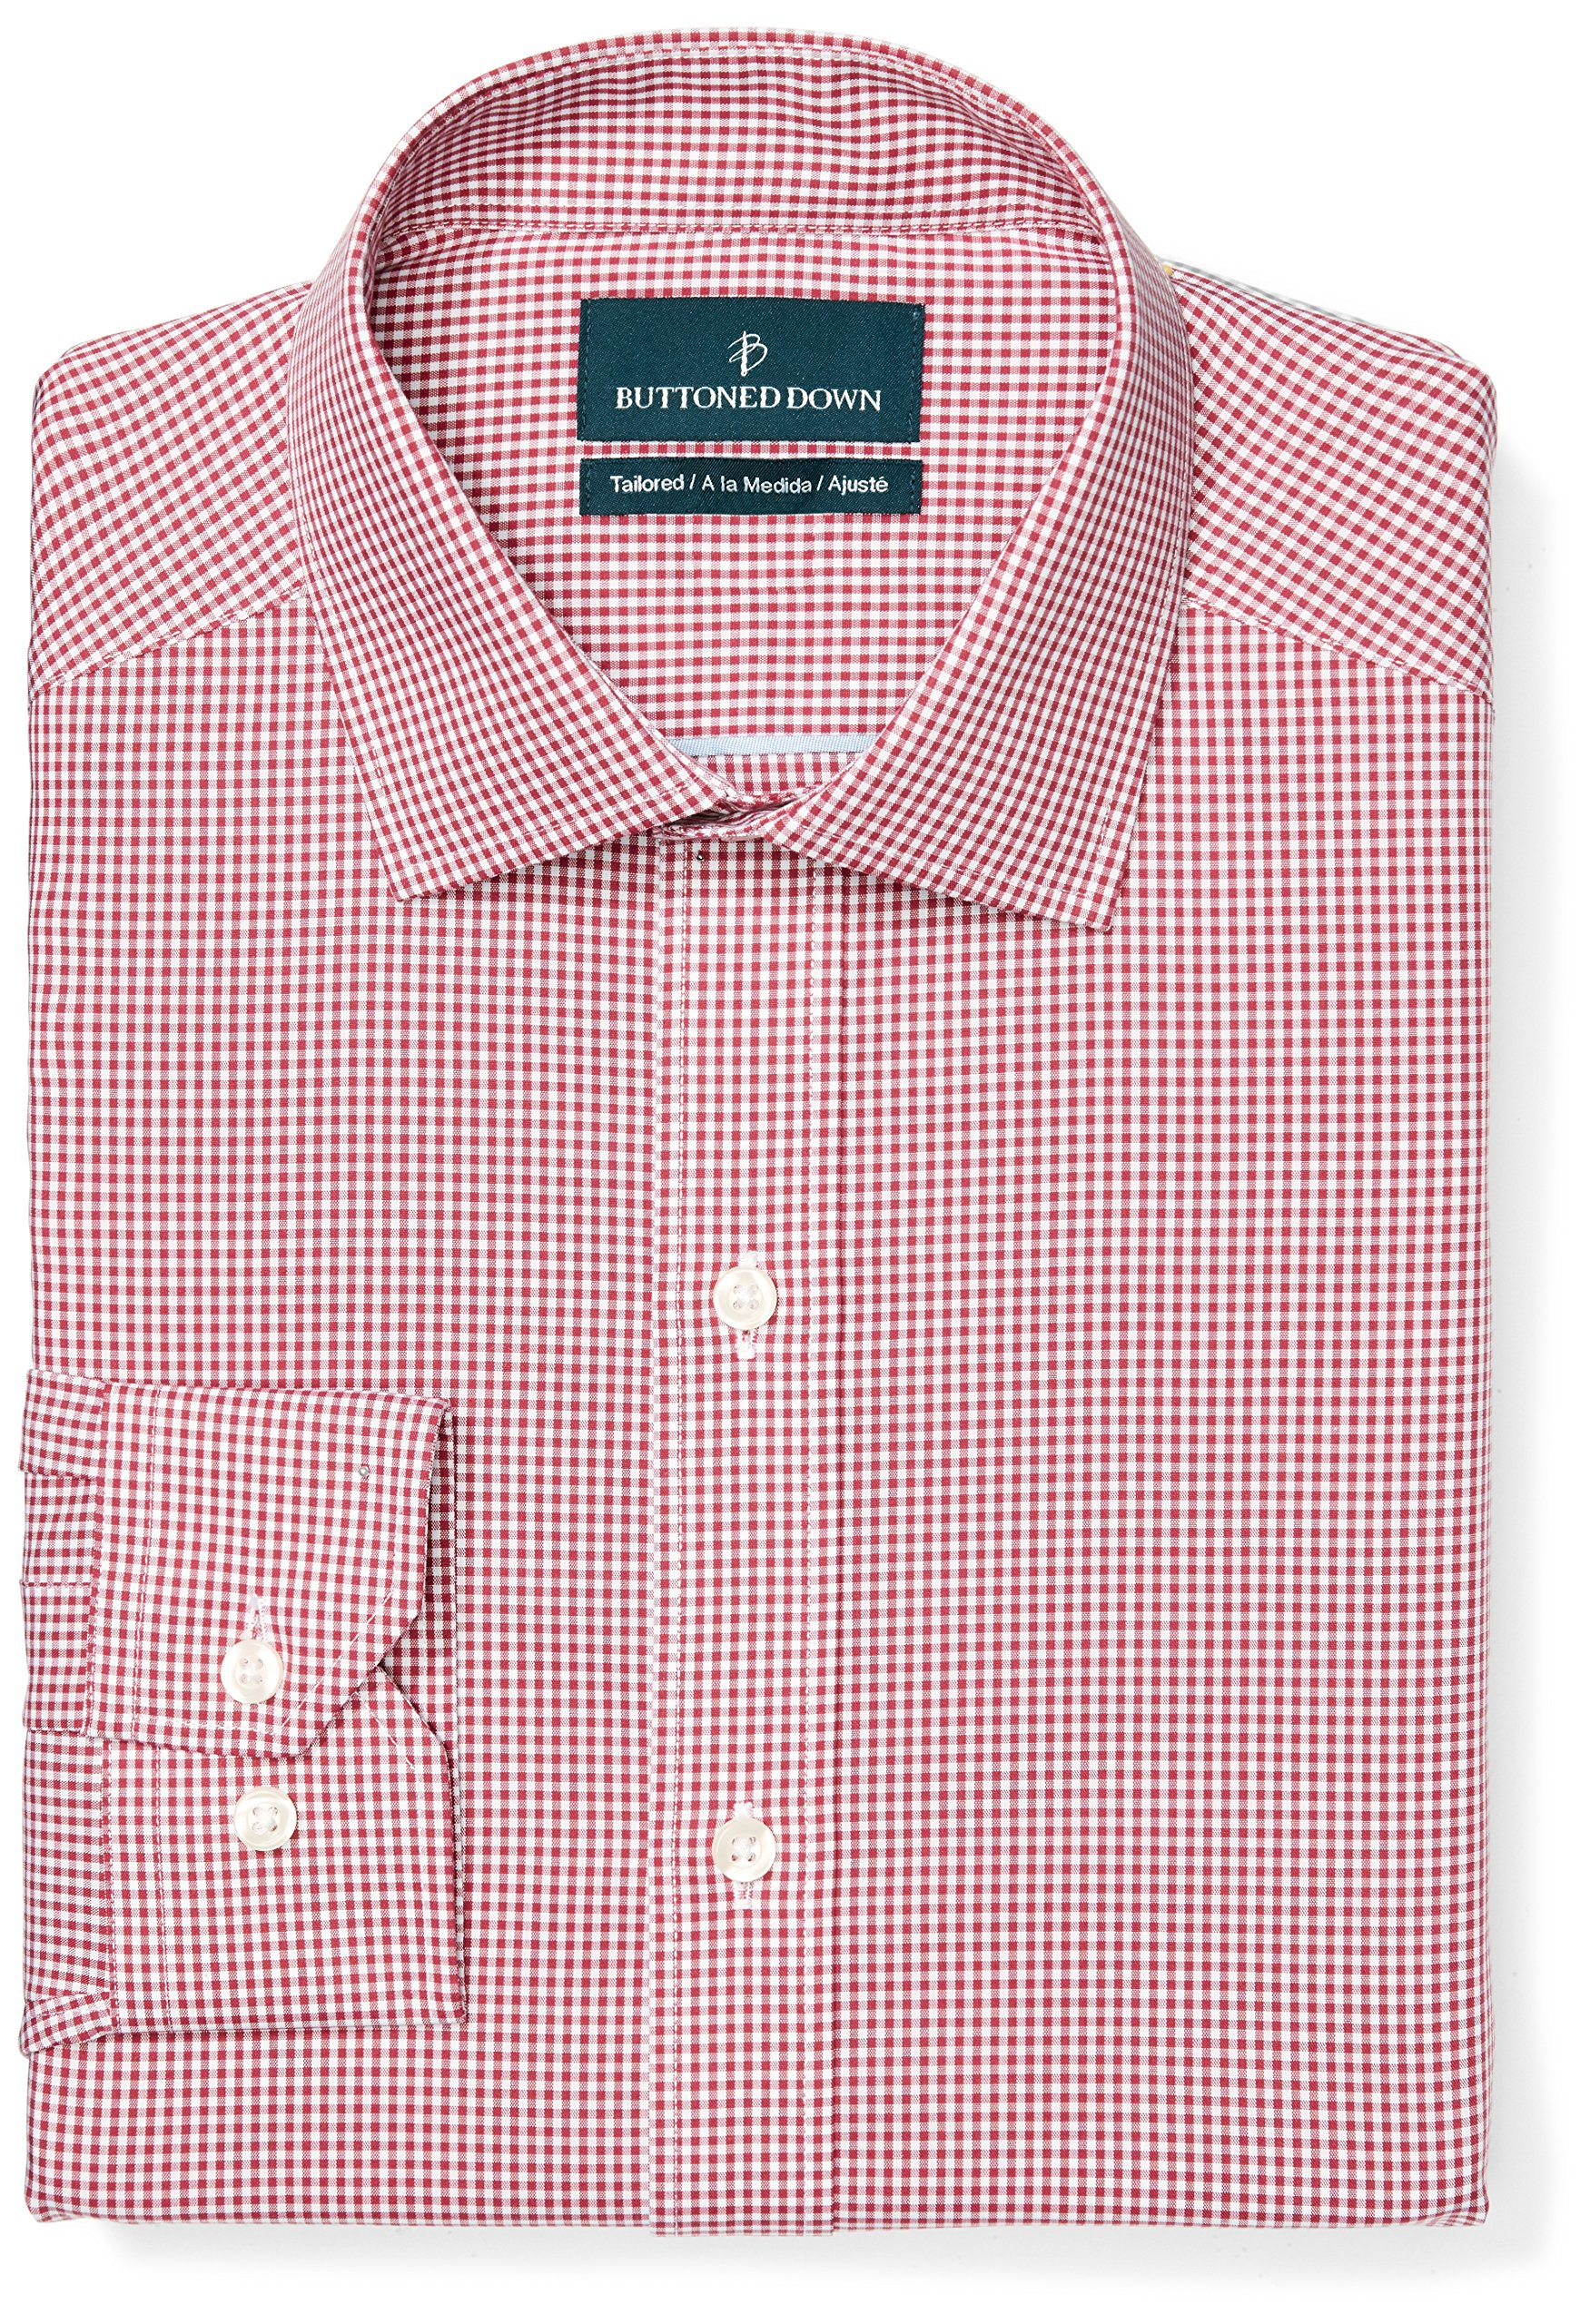 Buttoned Down Men's Tailored Fit Spread-Collar Pattern Non-Iron Dress Shirt, Burgundy Small Gingham, 15'' Neck 33'' Sleeve